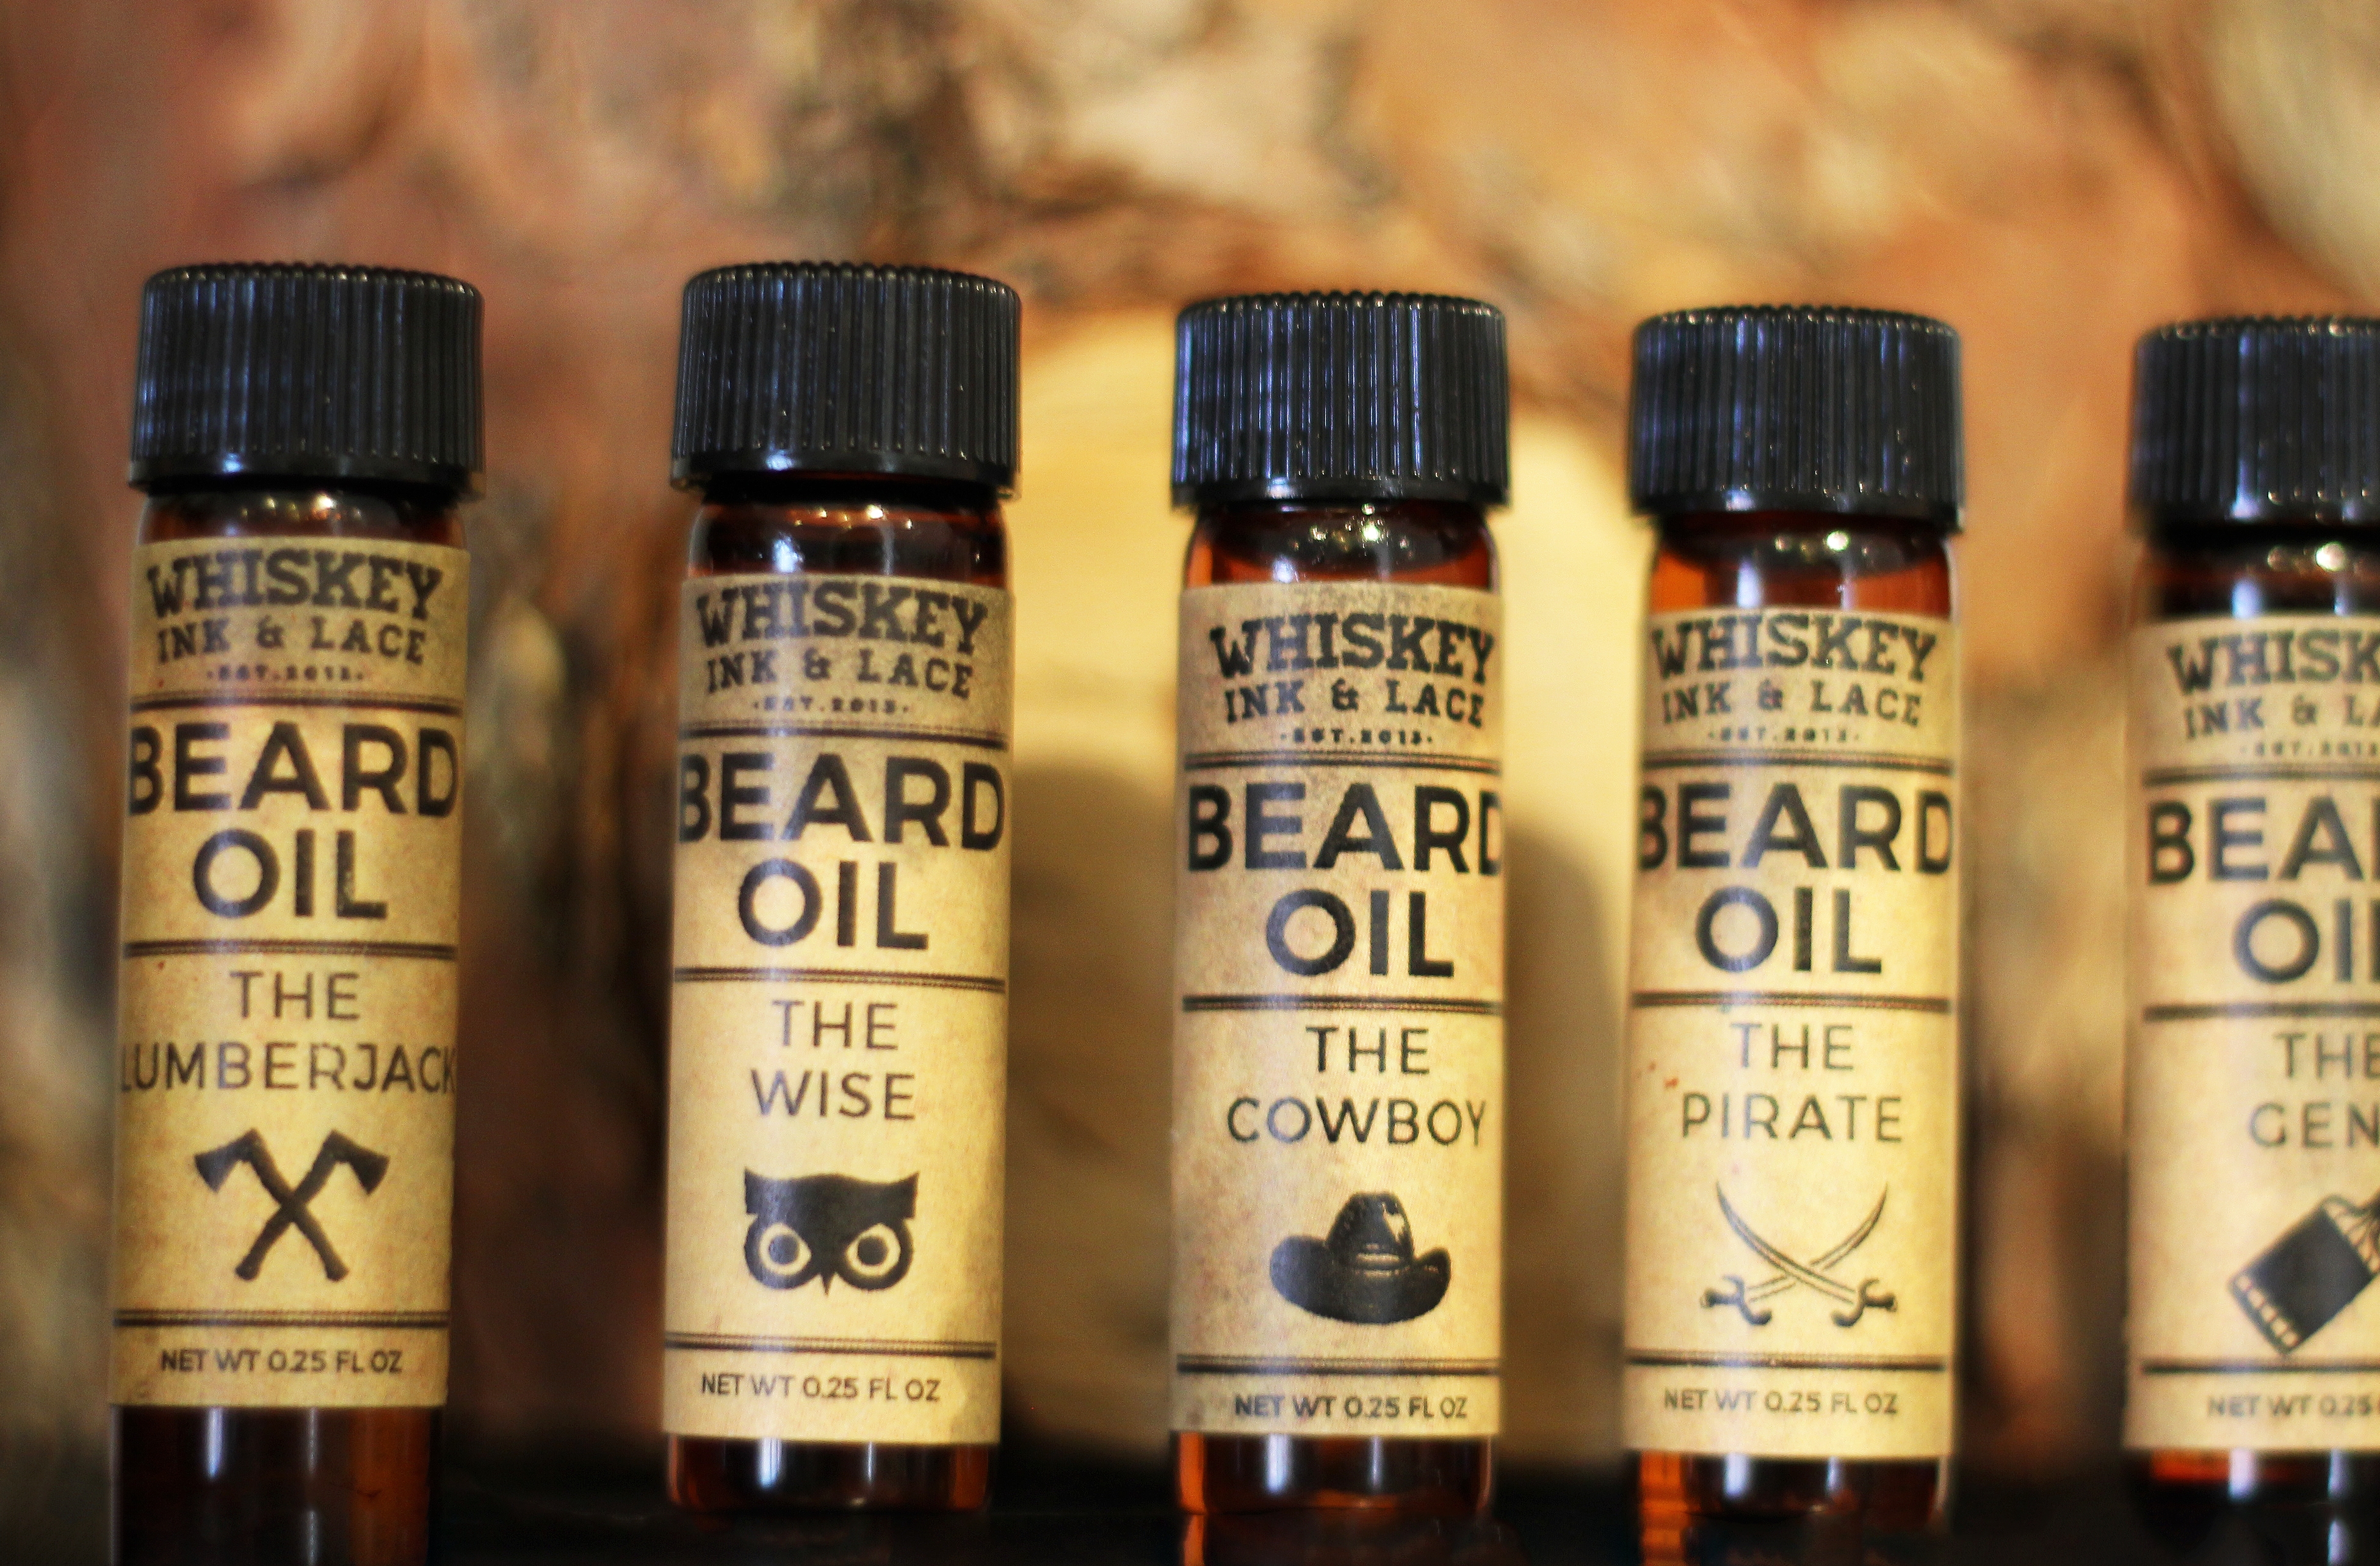 Beard oil sold at Sagestone Spa at Red Mountain Resort, December 14, 2015 | Photo by Ali Hill, St. George News